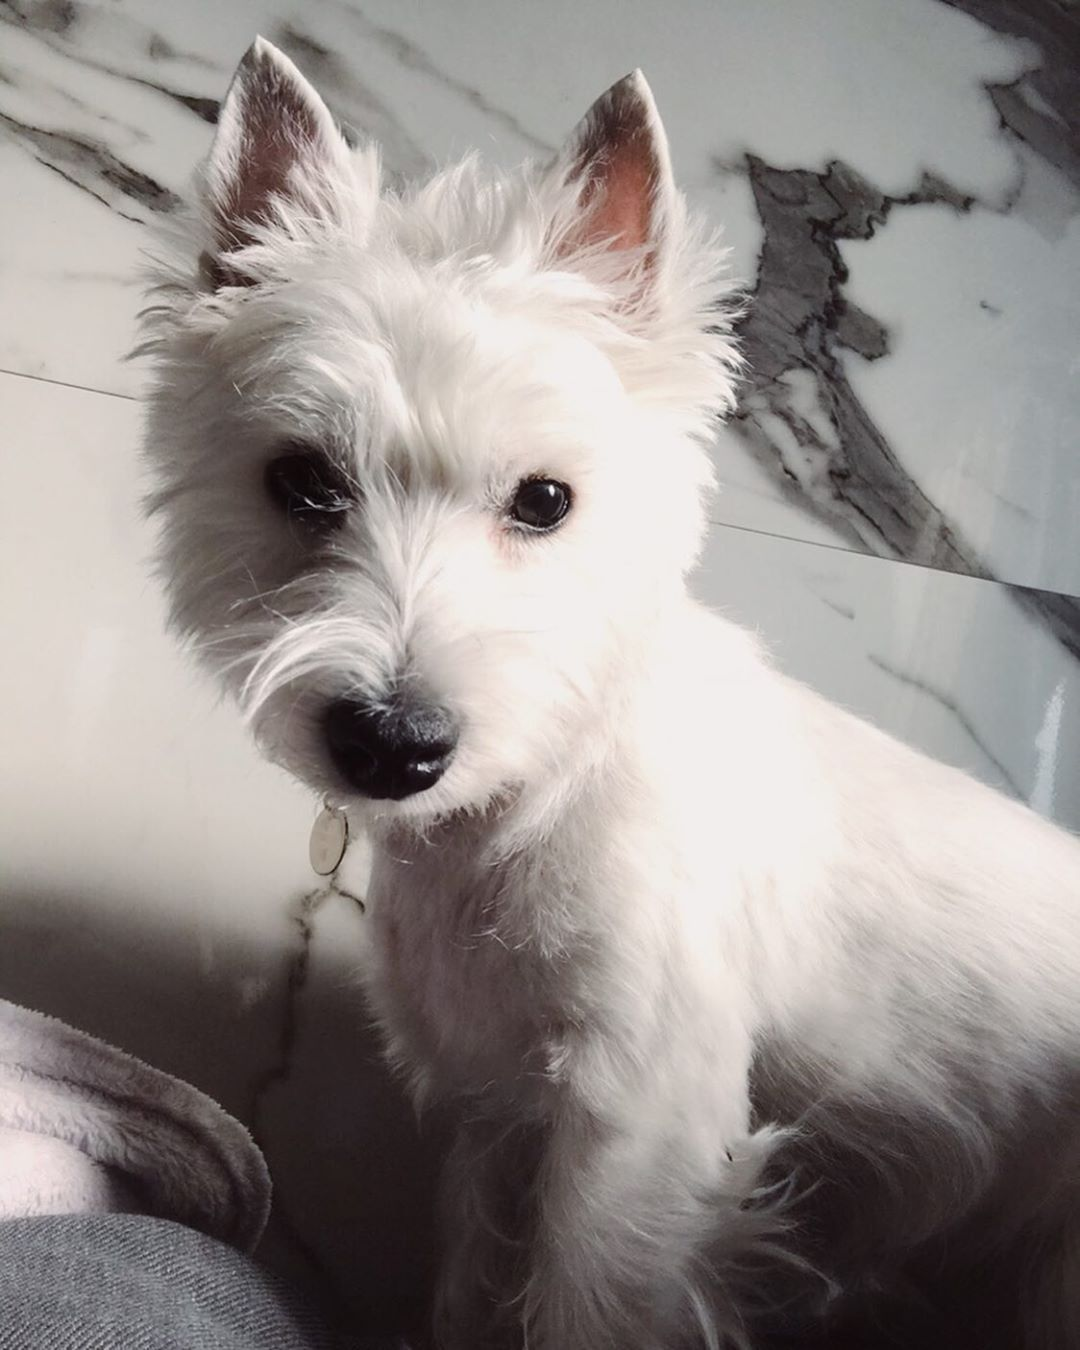 Pin By Heather Hardecopf On Too Cute In 2020 West Highland White Terrier White Dogs Cute Animals